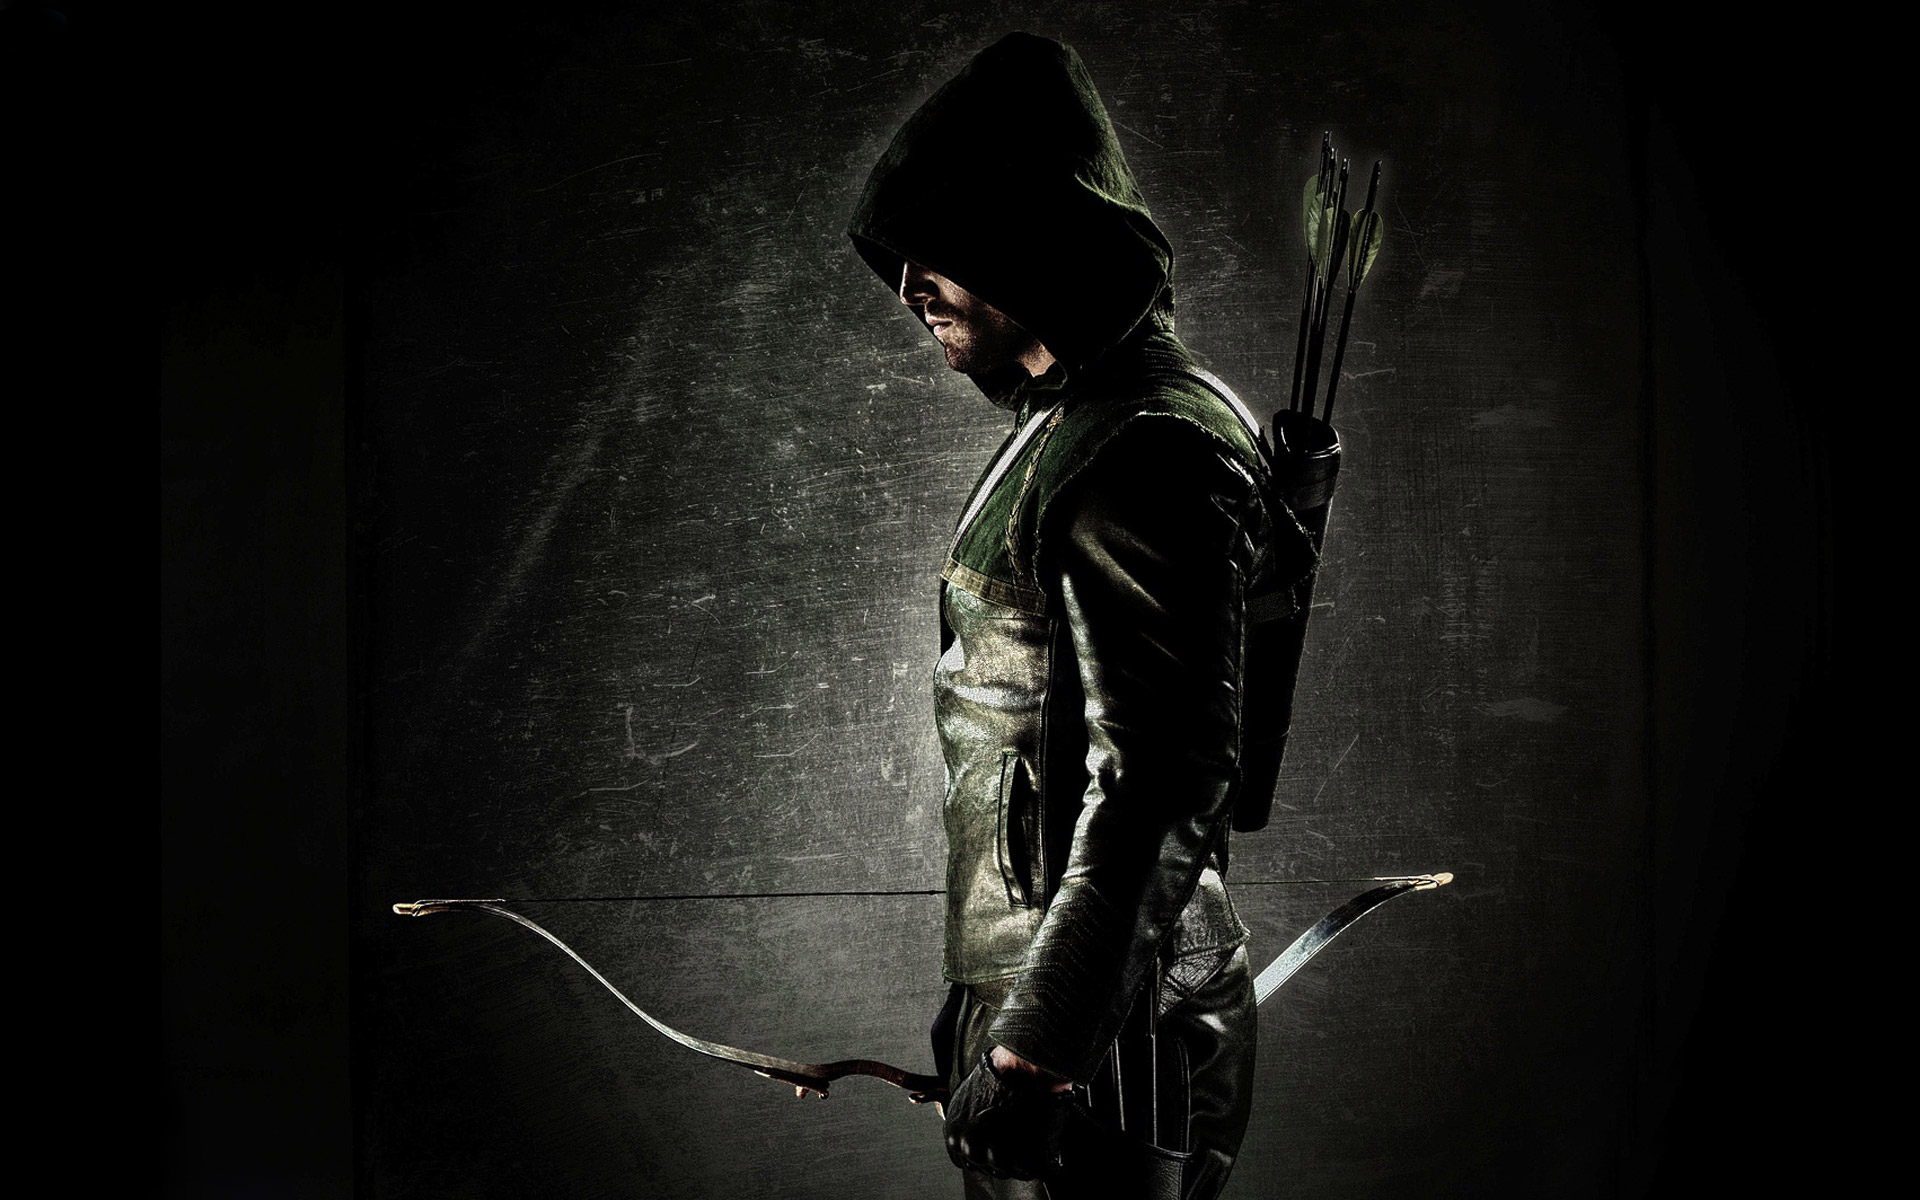 Awesome Arrow Picture Wallpaper High Definition High